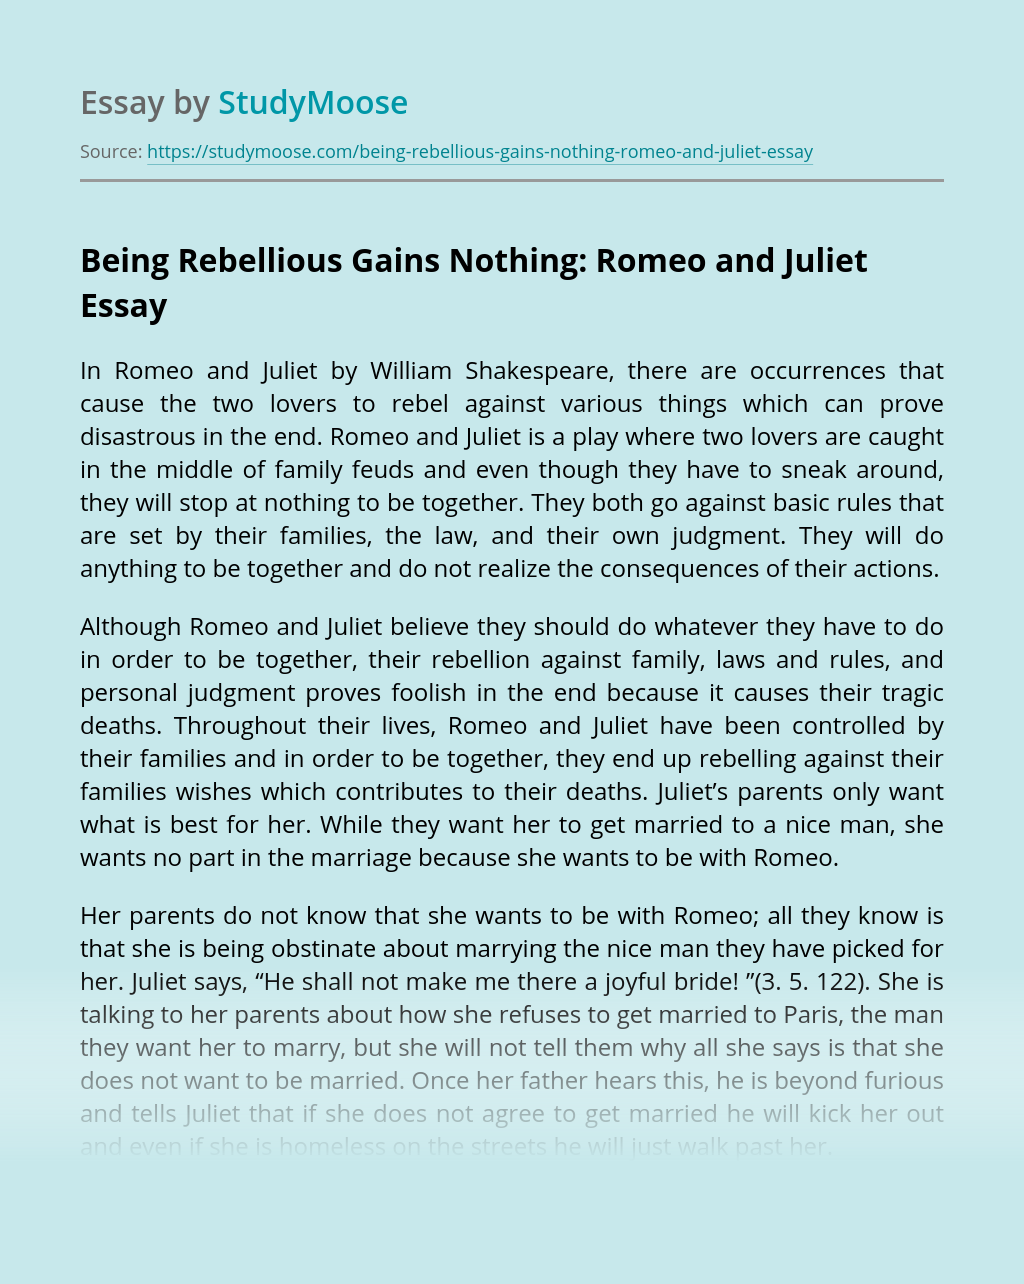 Being Rebellious Gains Nothing: Romeo and Juliet